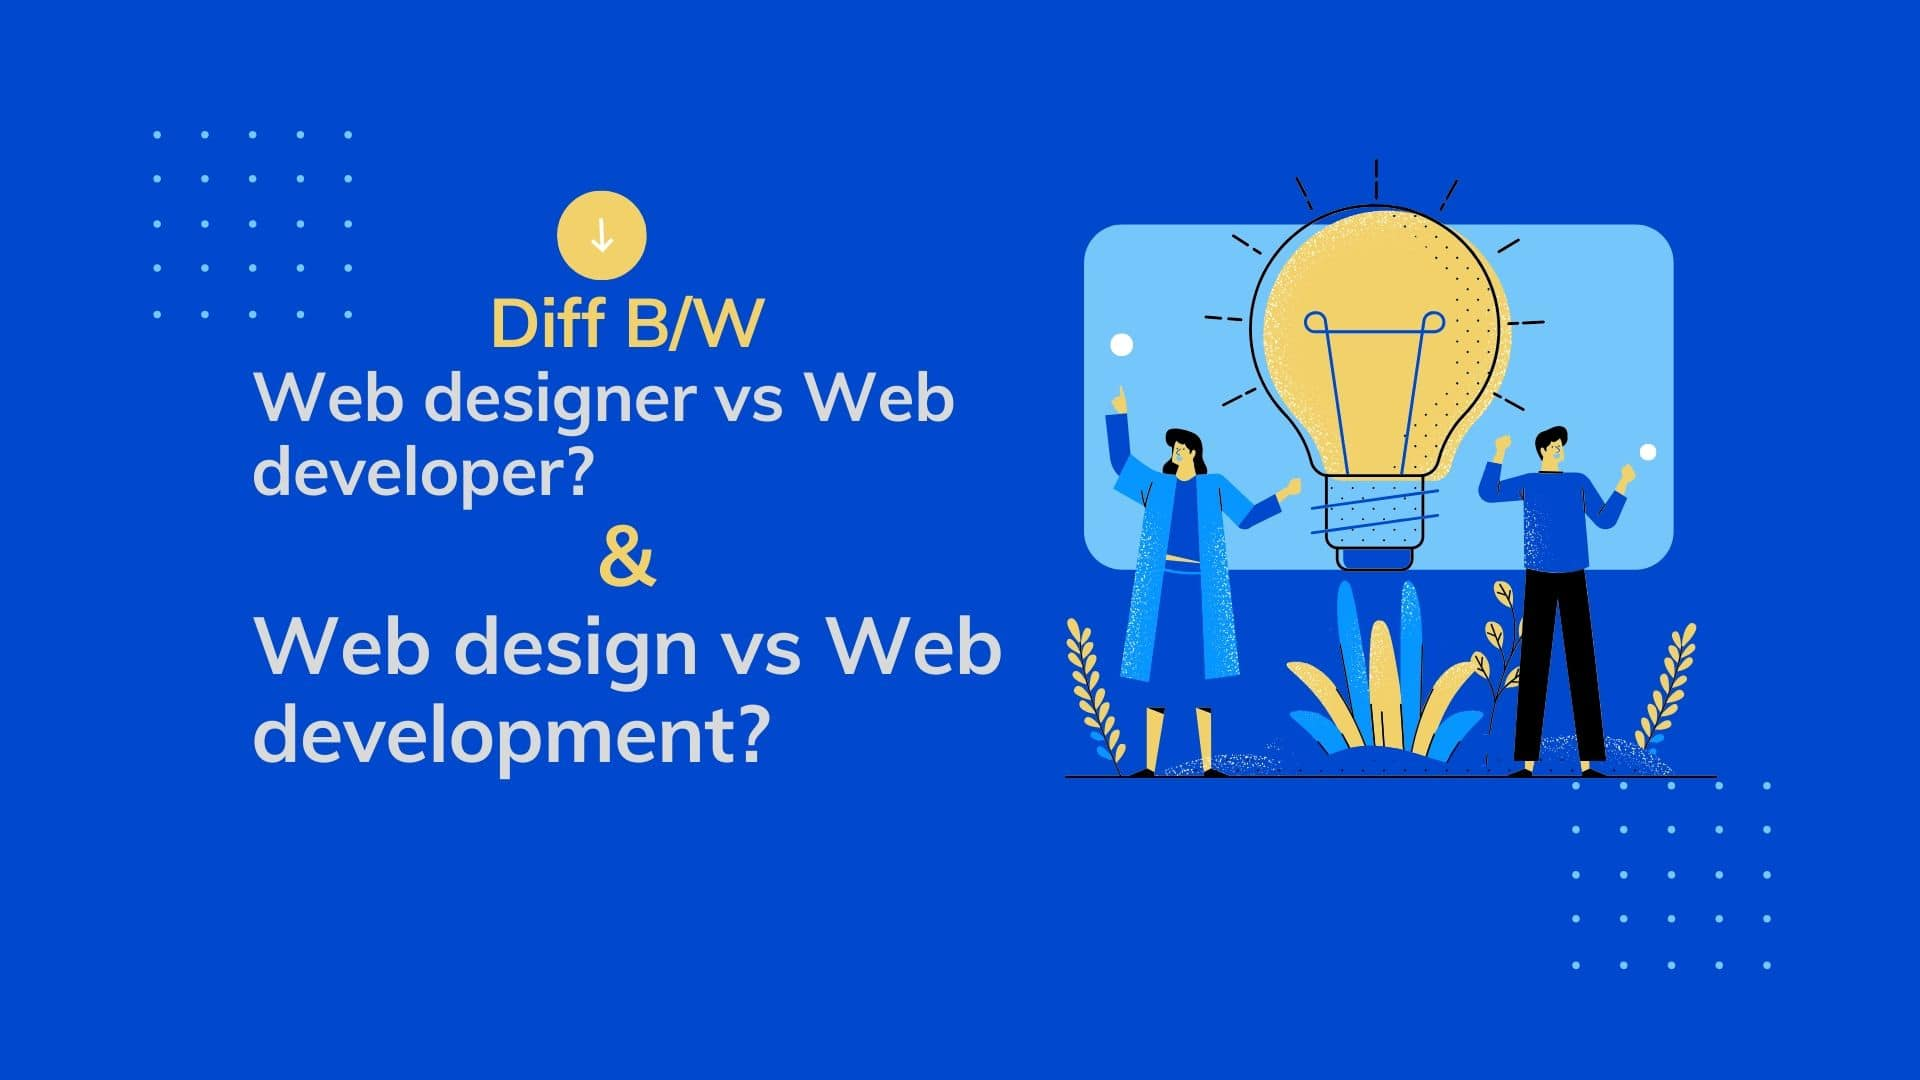 Web designer vs Web developer, Web design vs Web development, Web Developer, What is Web Development, What is Web Design